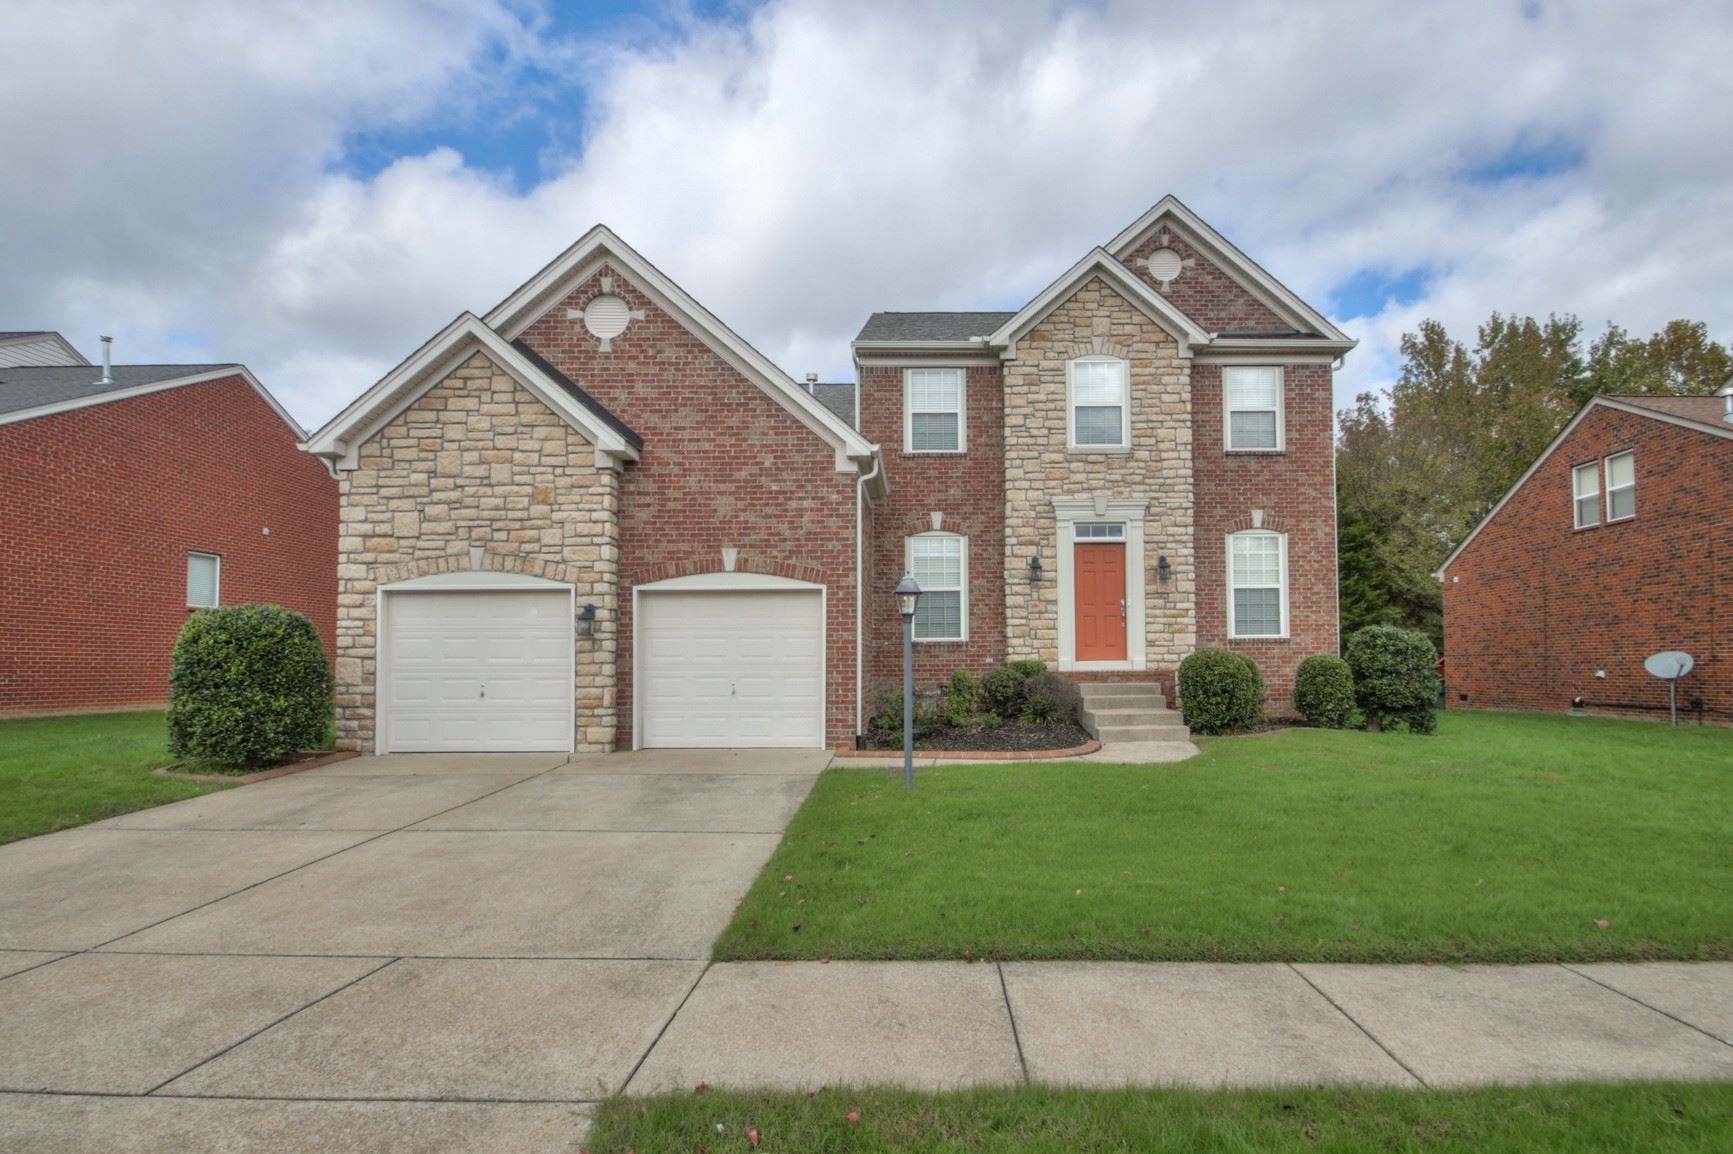 420 Landings Way, Mount Juliet, TN 37122 - MLS#: 2202717